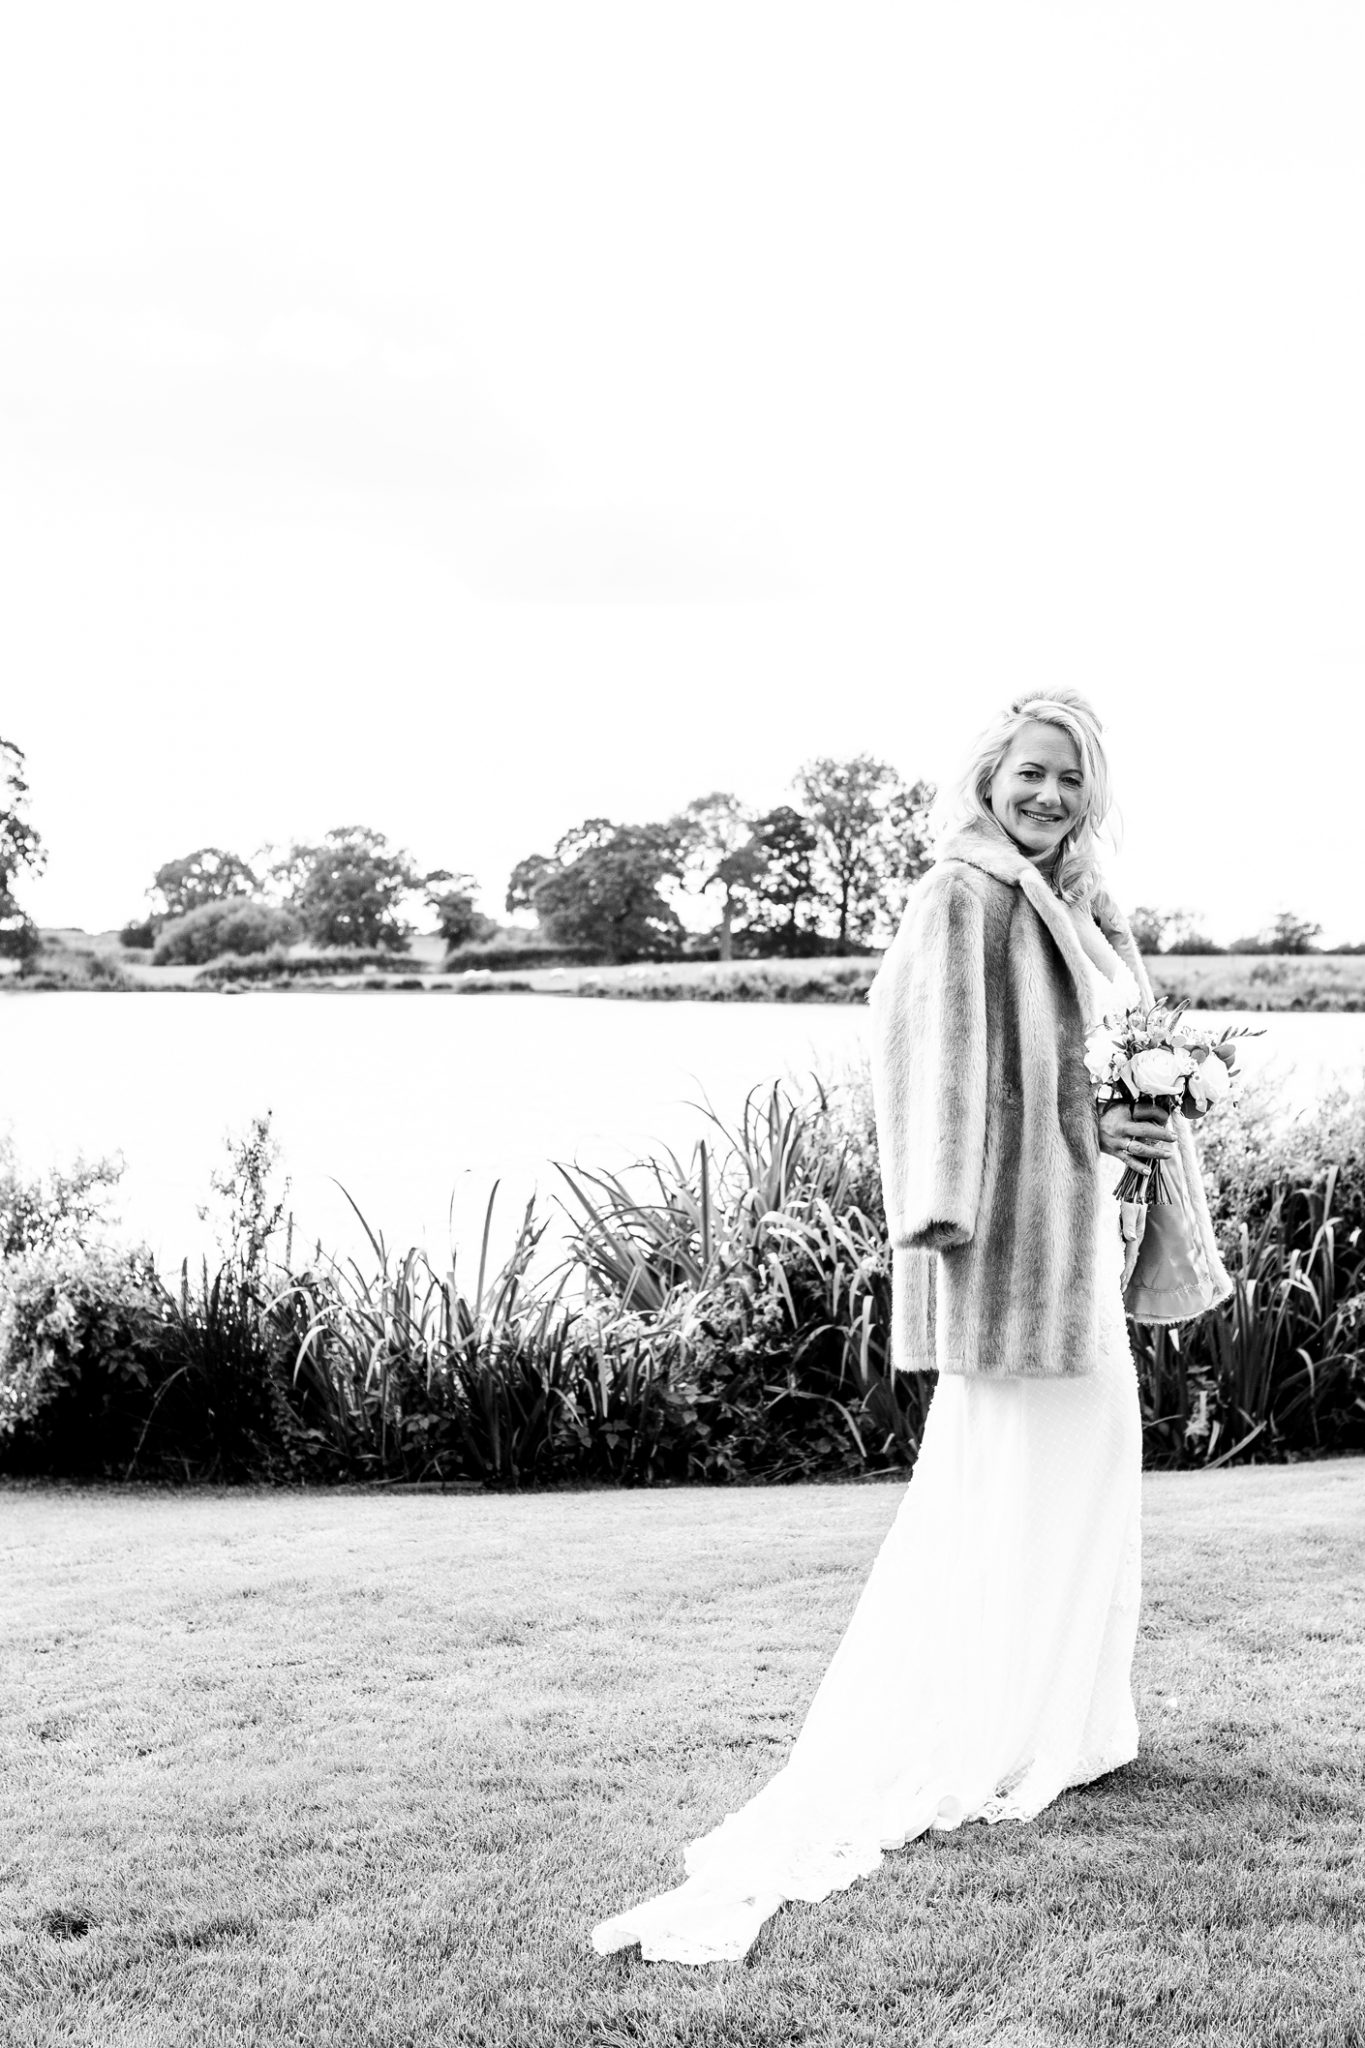 wedding-photography-of-the-bride-after-the-wedding-ceremony-in-cheshire